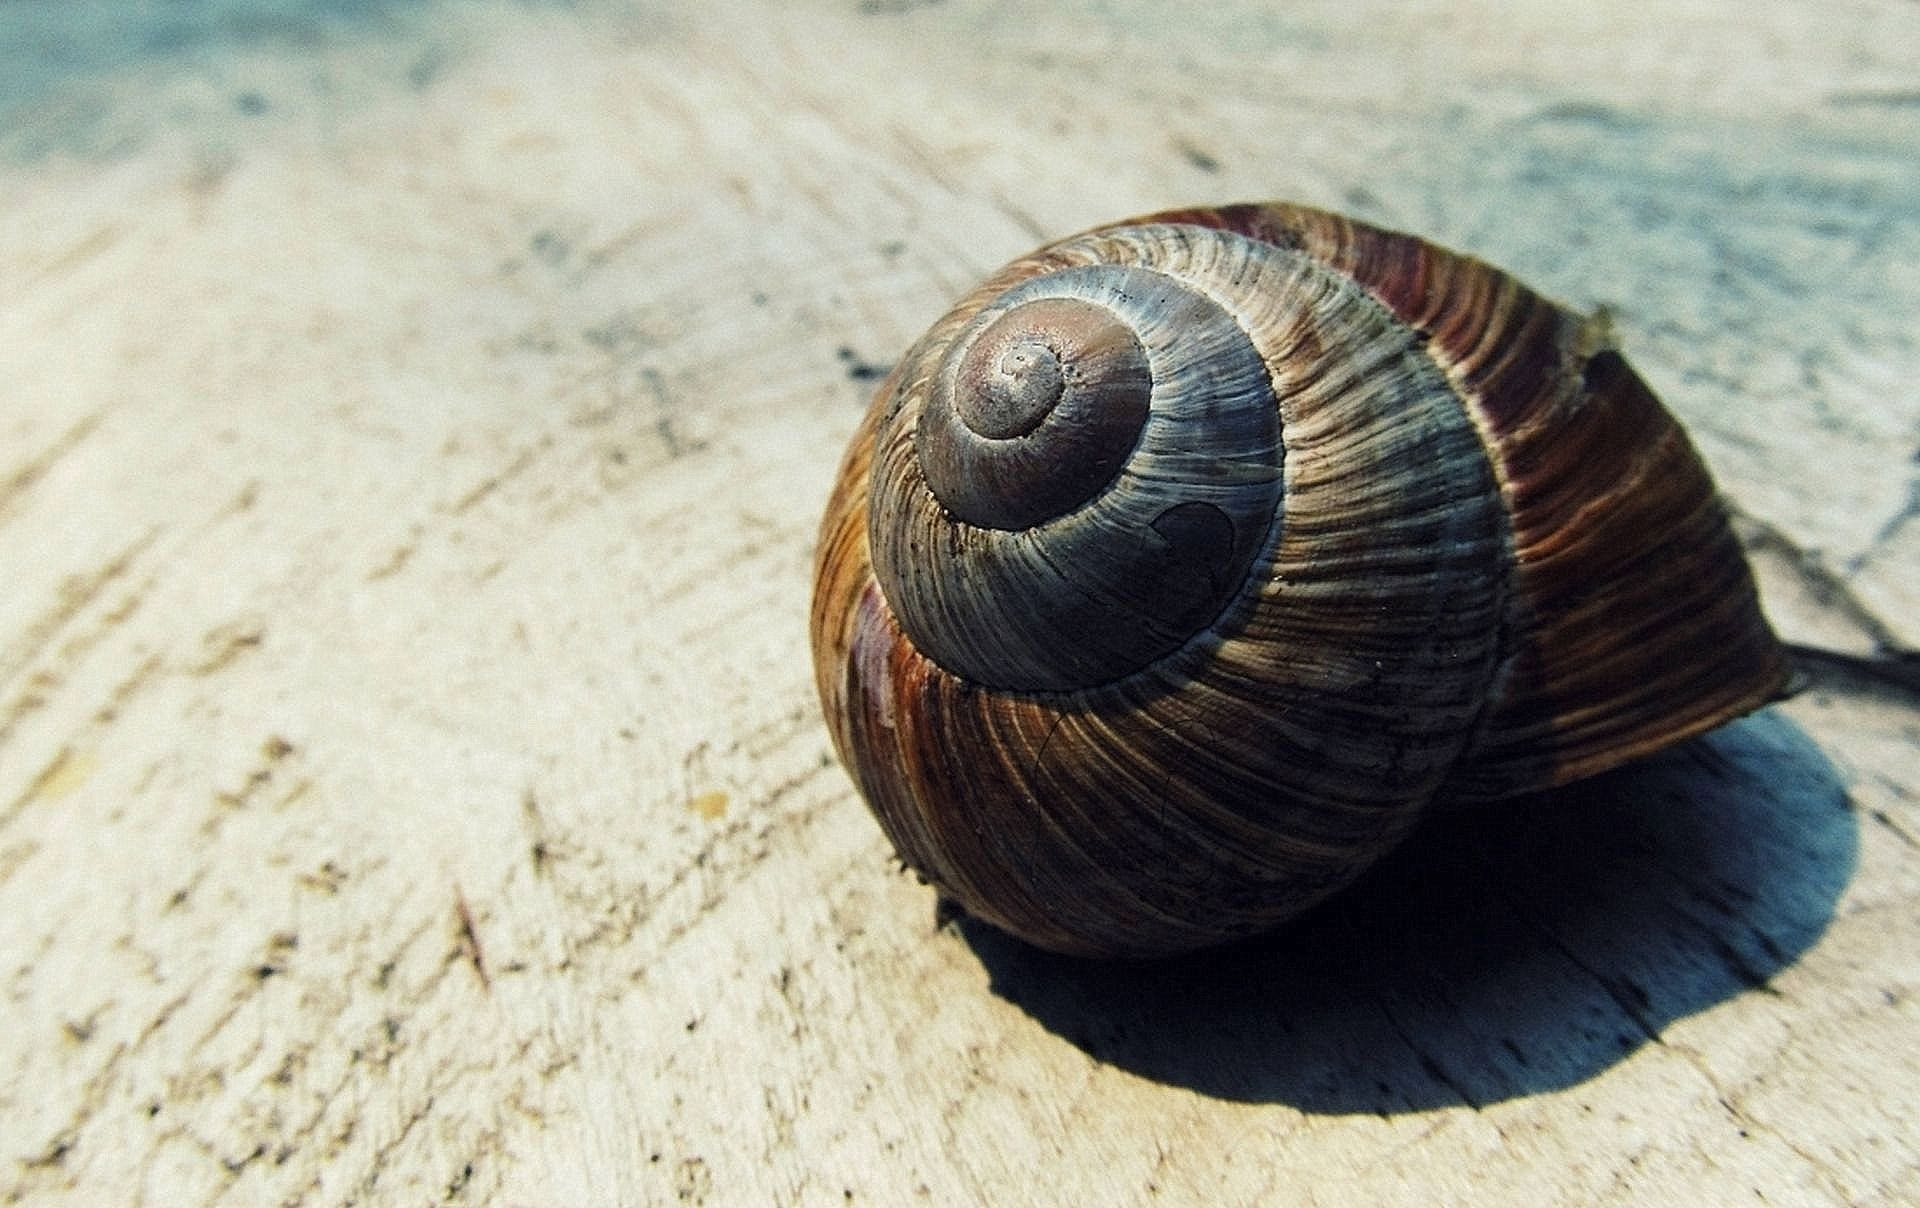 Black and Brown Snail Shell on Beige Textile